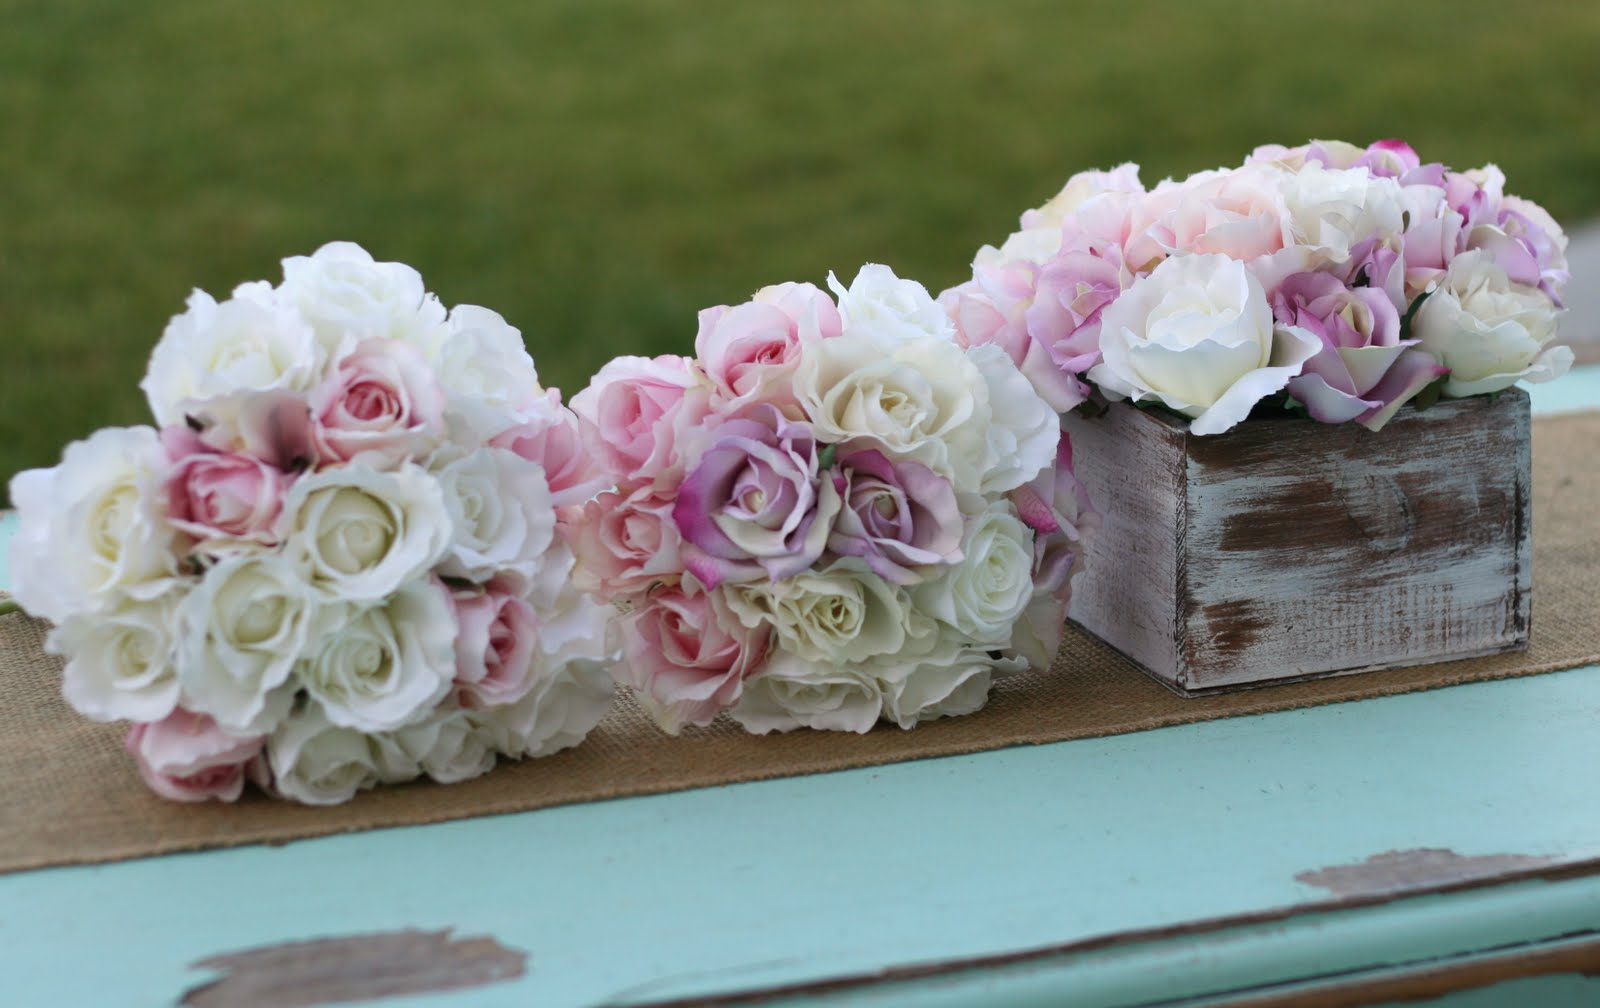 morgann hill designs shabby chic rustic flower bouquet wedding rh morgannhilldesigns blogspot com shabby chic floral arrangements shabby chic flower arrangements pinterest